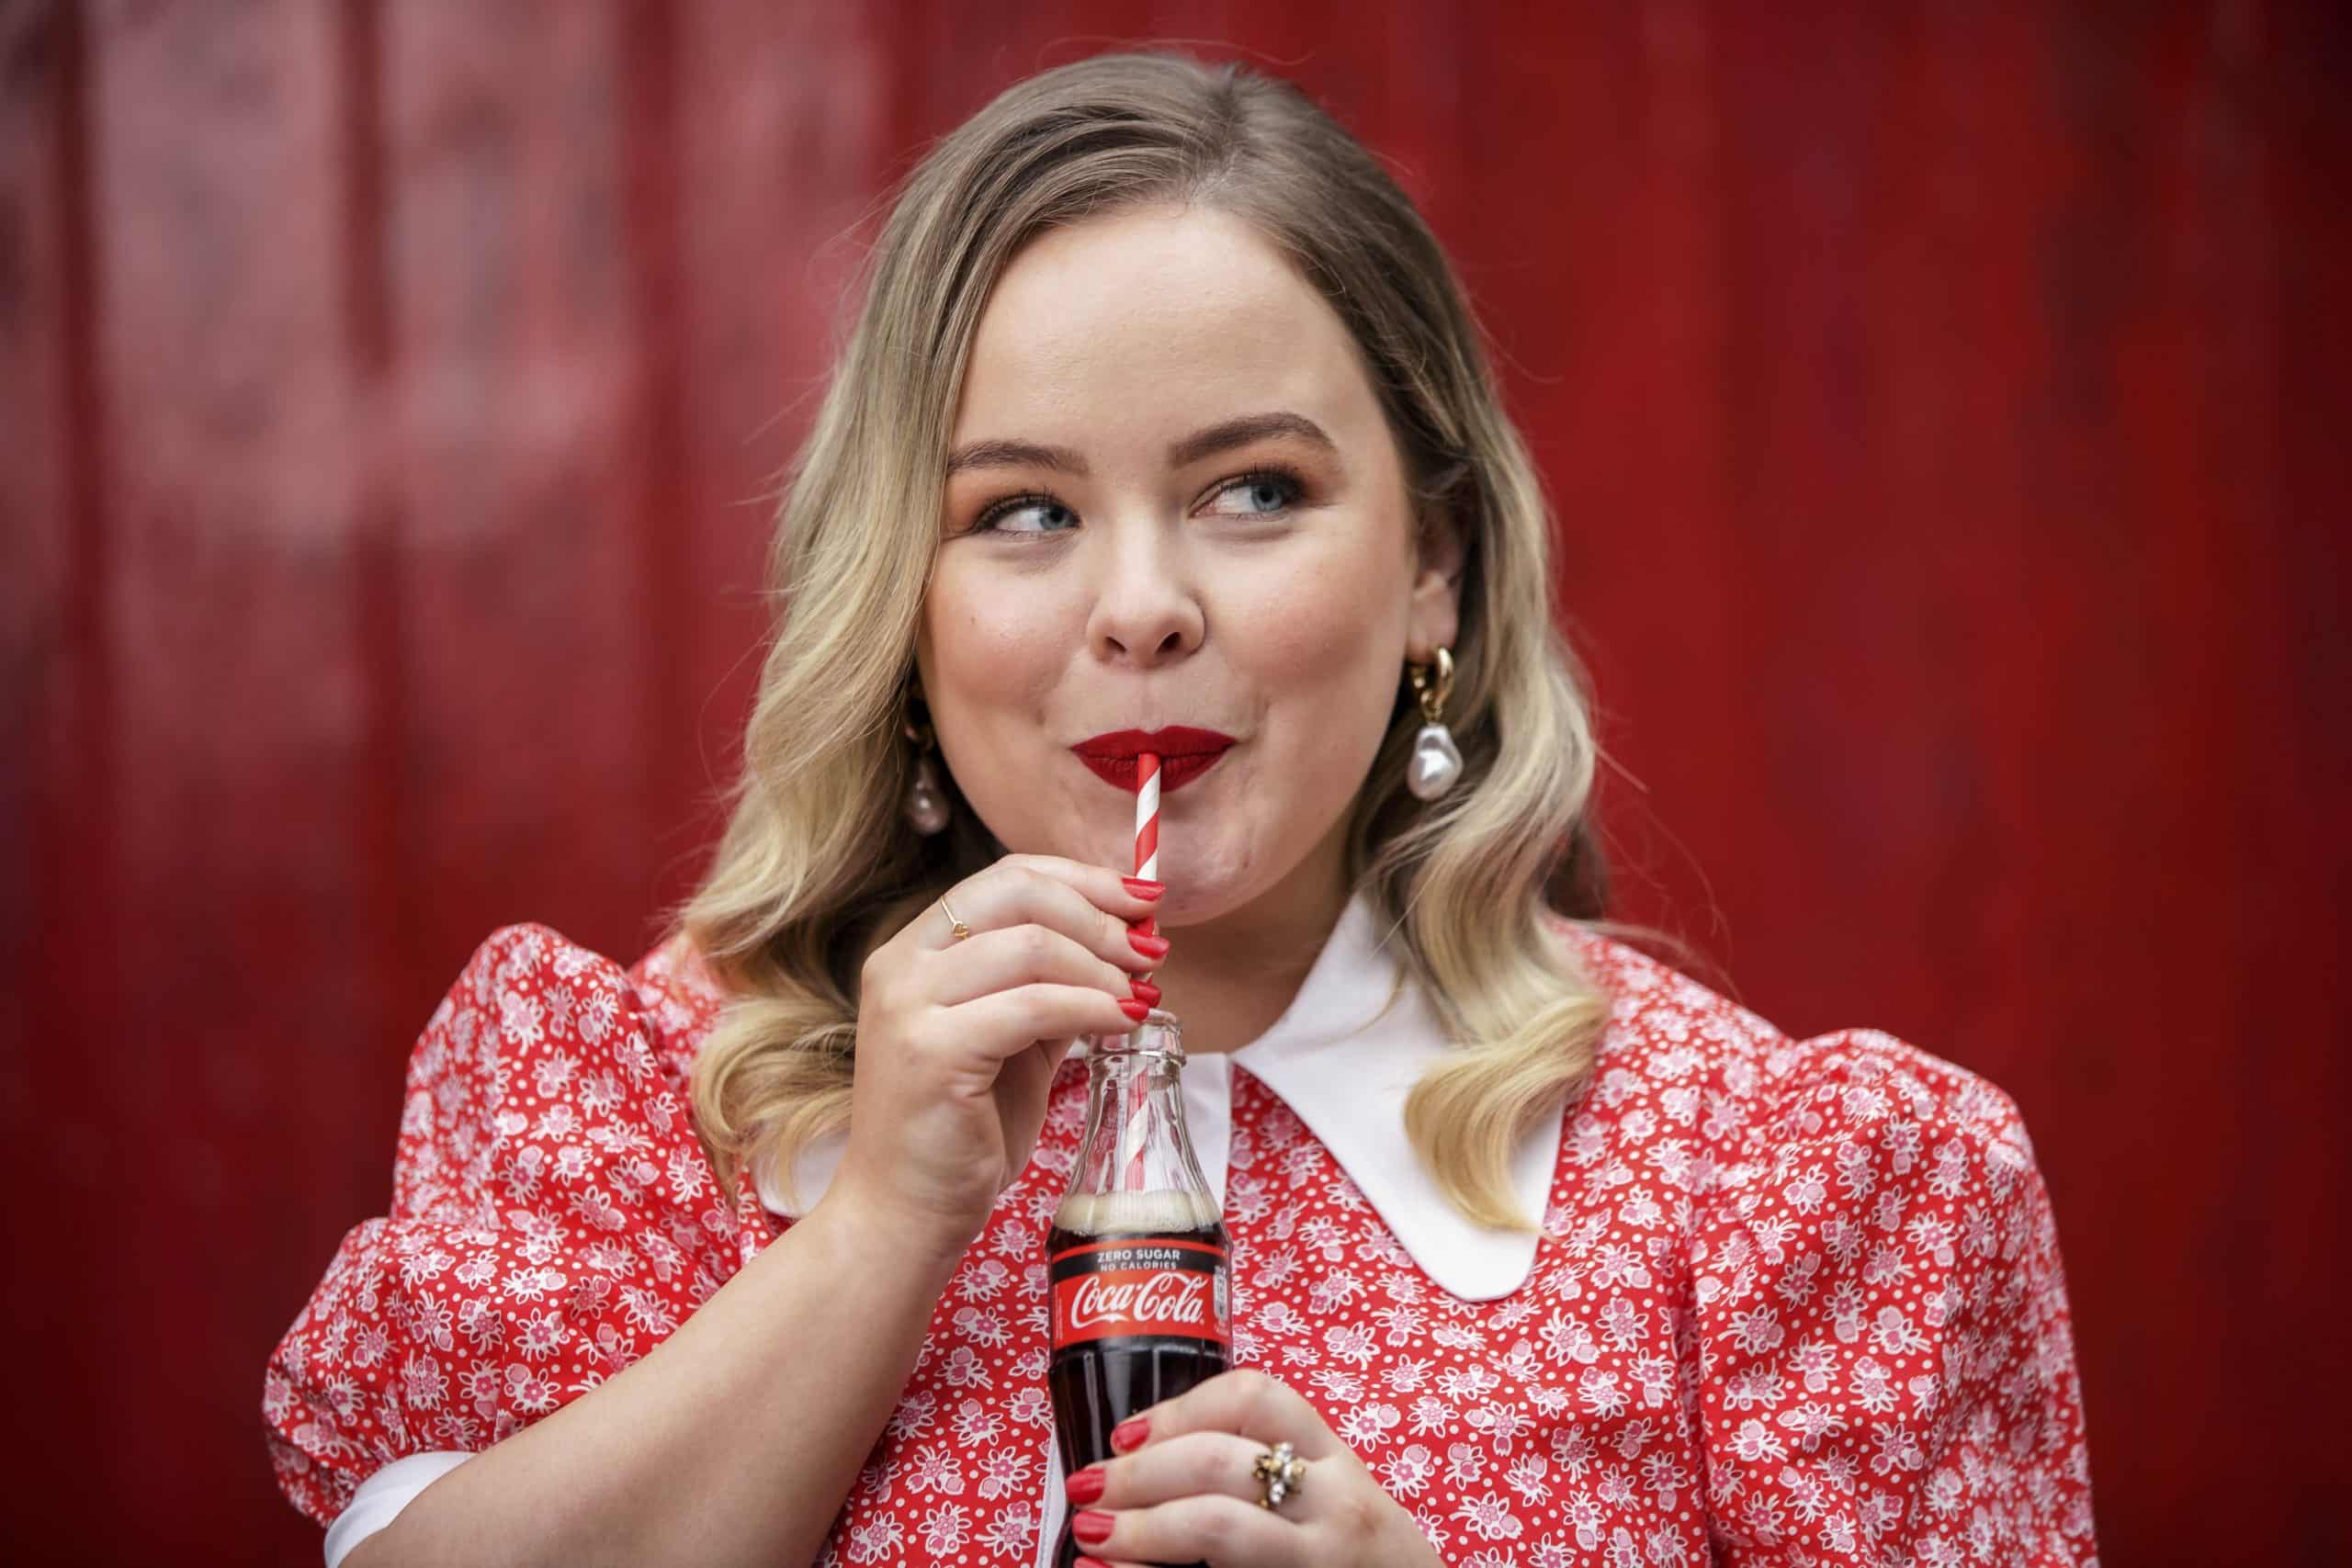 Nicola Coughlan joins Coca-Cola to invite people to enjoy a free Coke to support local bars, restaurants, and cafes across the nation